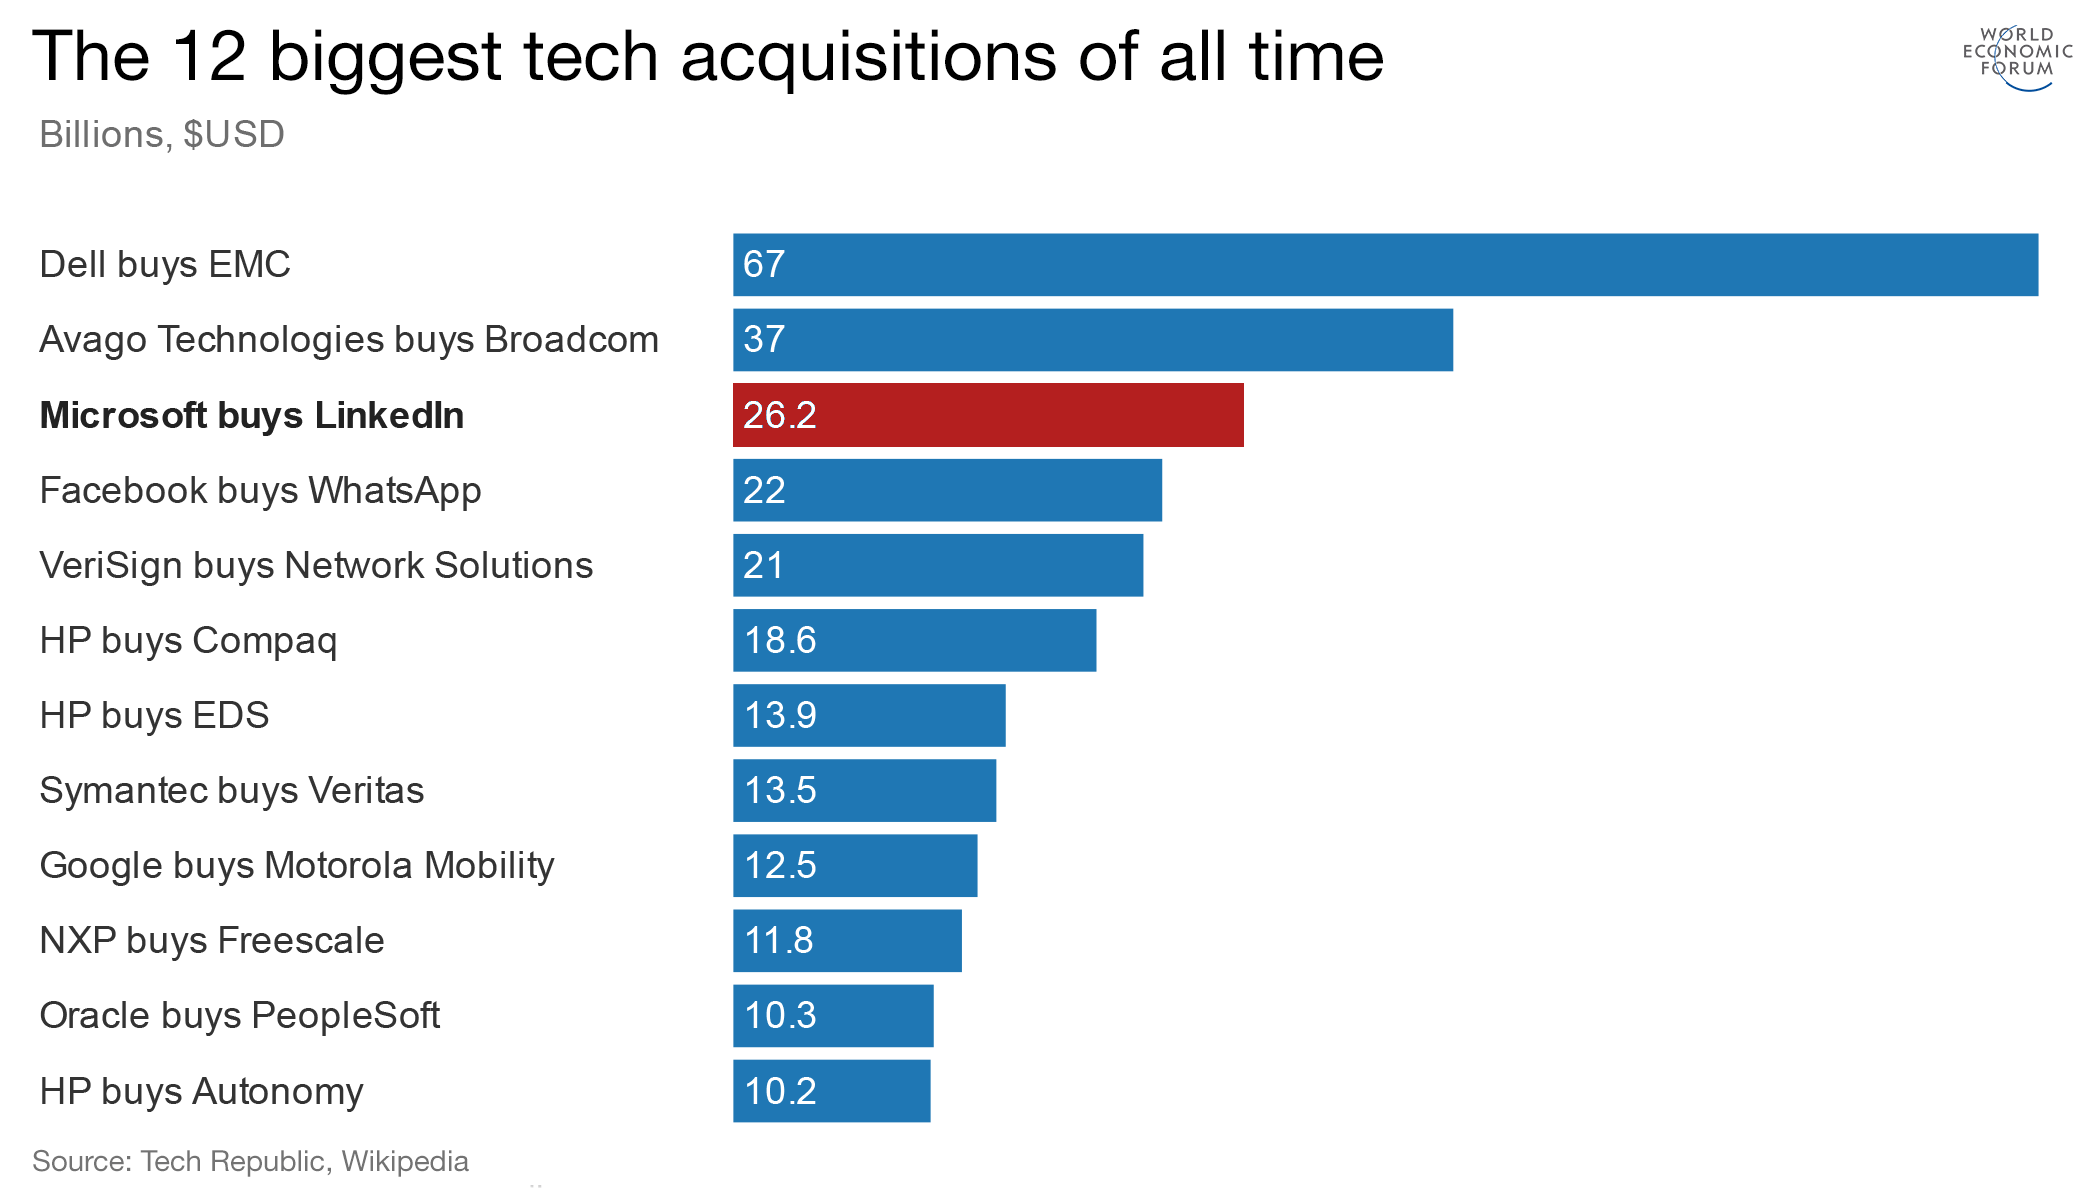 The 12 Biggest Technology Acquisitions Of All Time